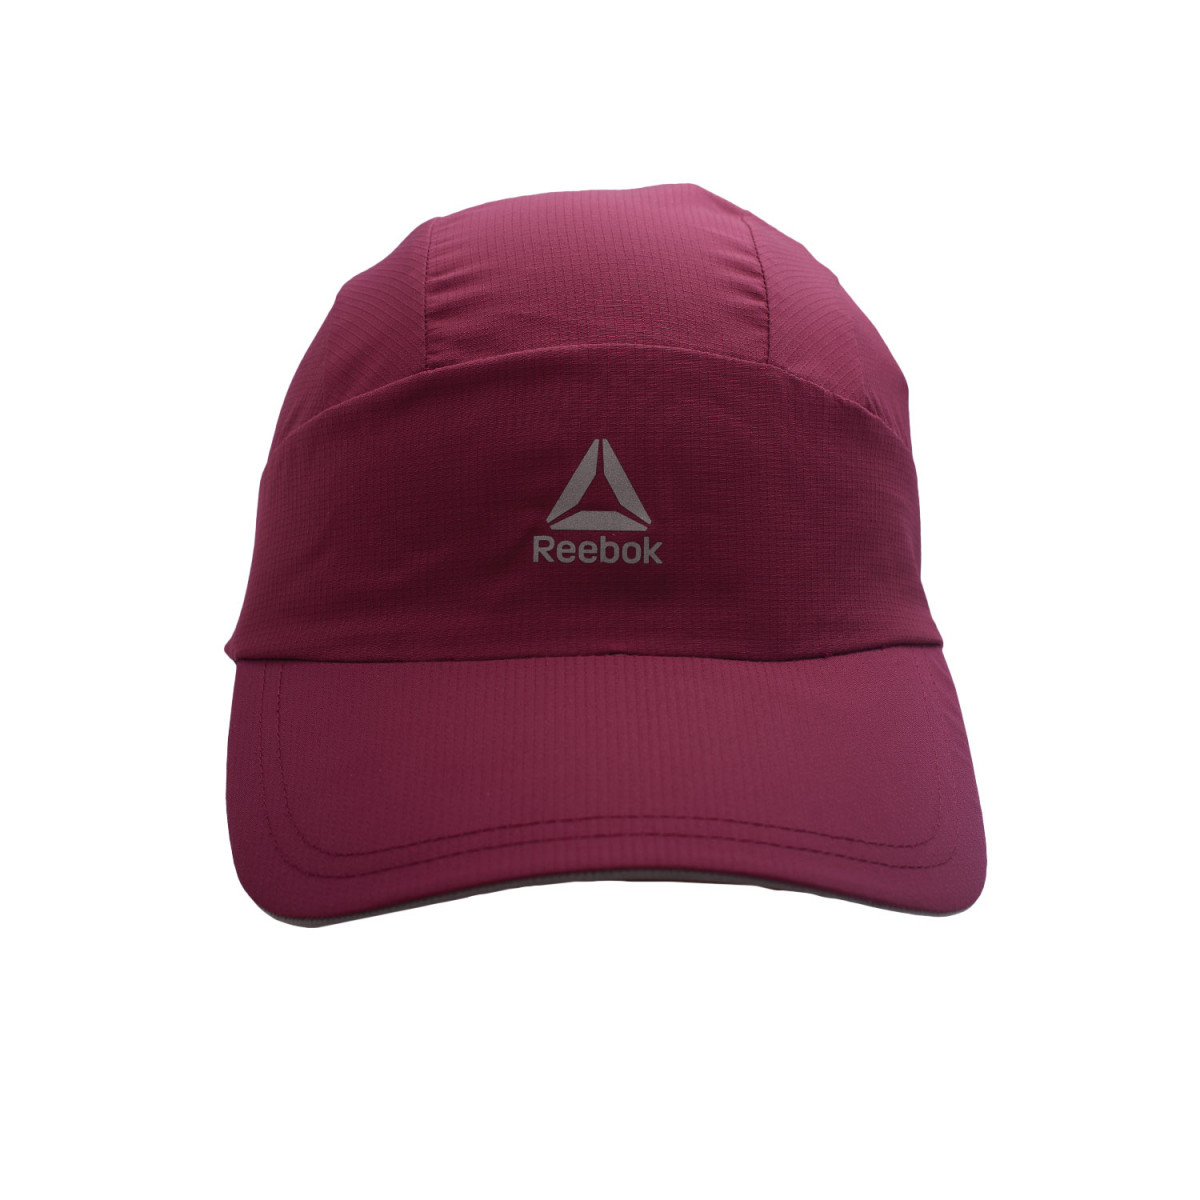 636ec3d146892 Gorra Reebok One Series Running Performance - Caps - Gorros ...